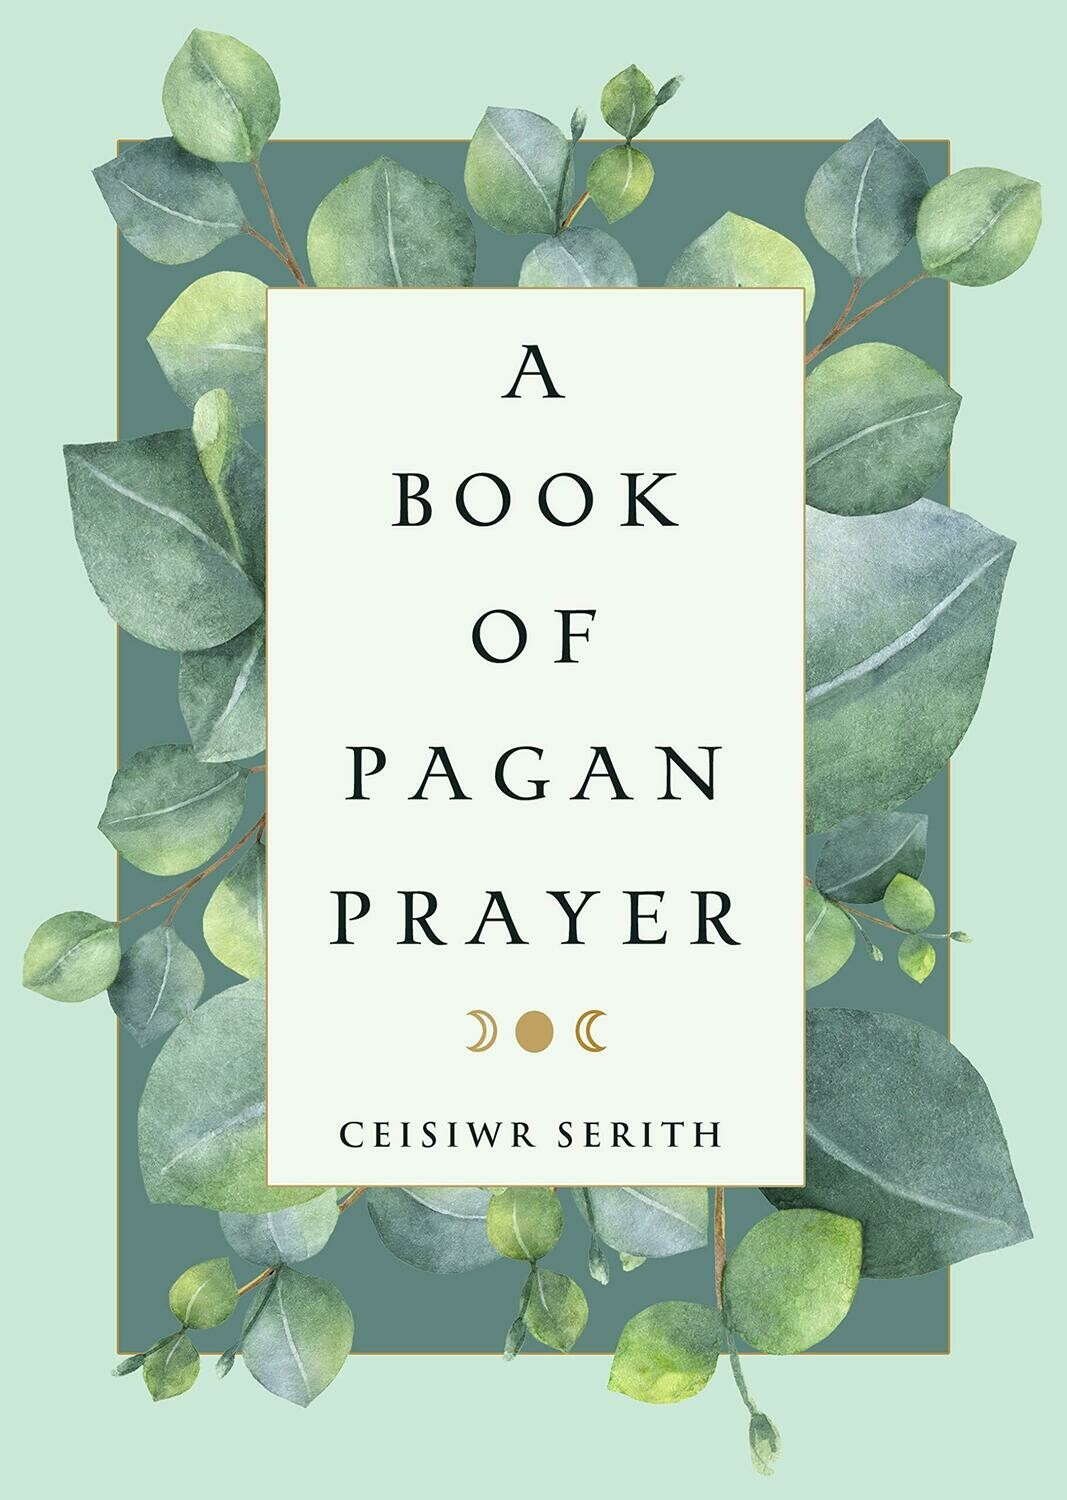 A Book of Pagan Prayer by Ceisiwr Serith